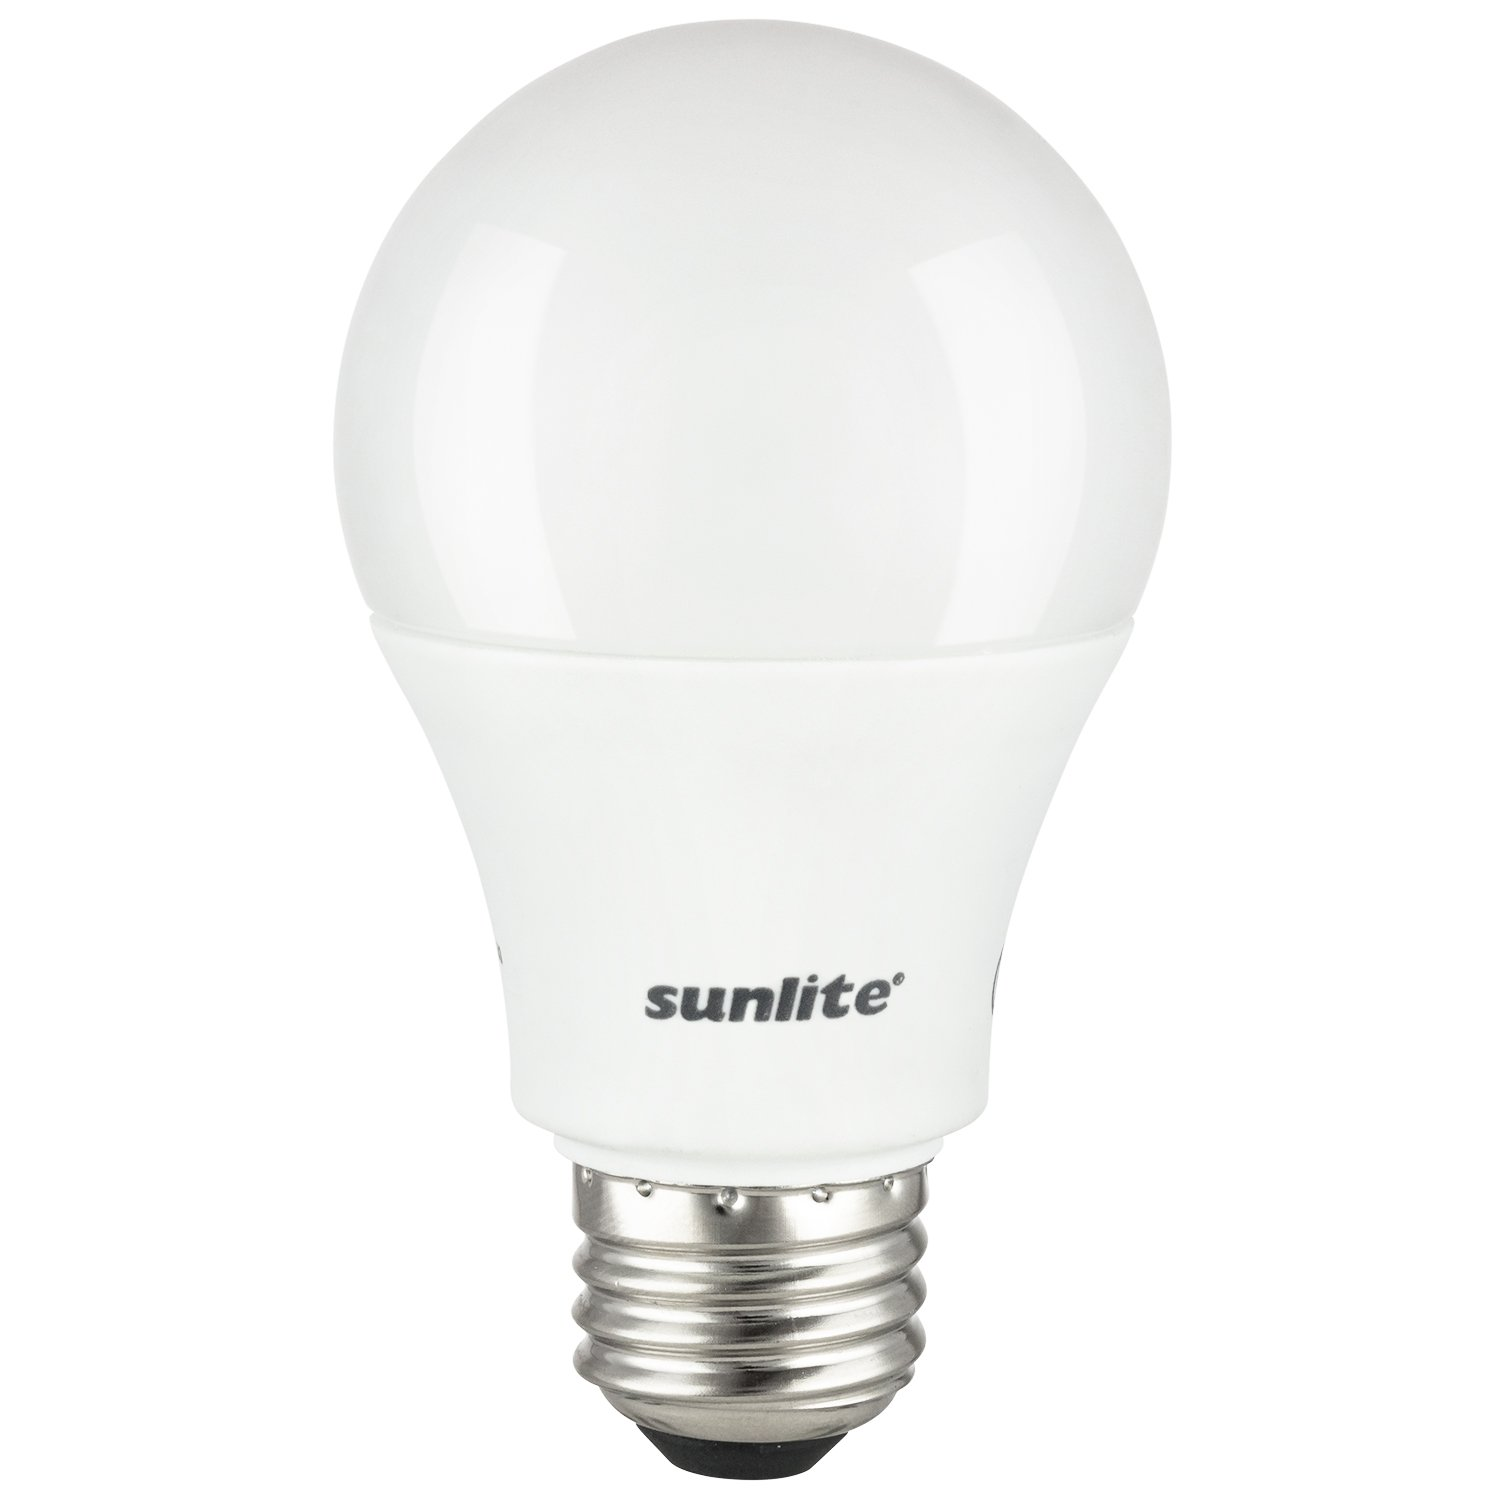 Sunlite A19/LED/10W/30K LED A Type Household 9W (60W